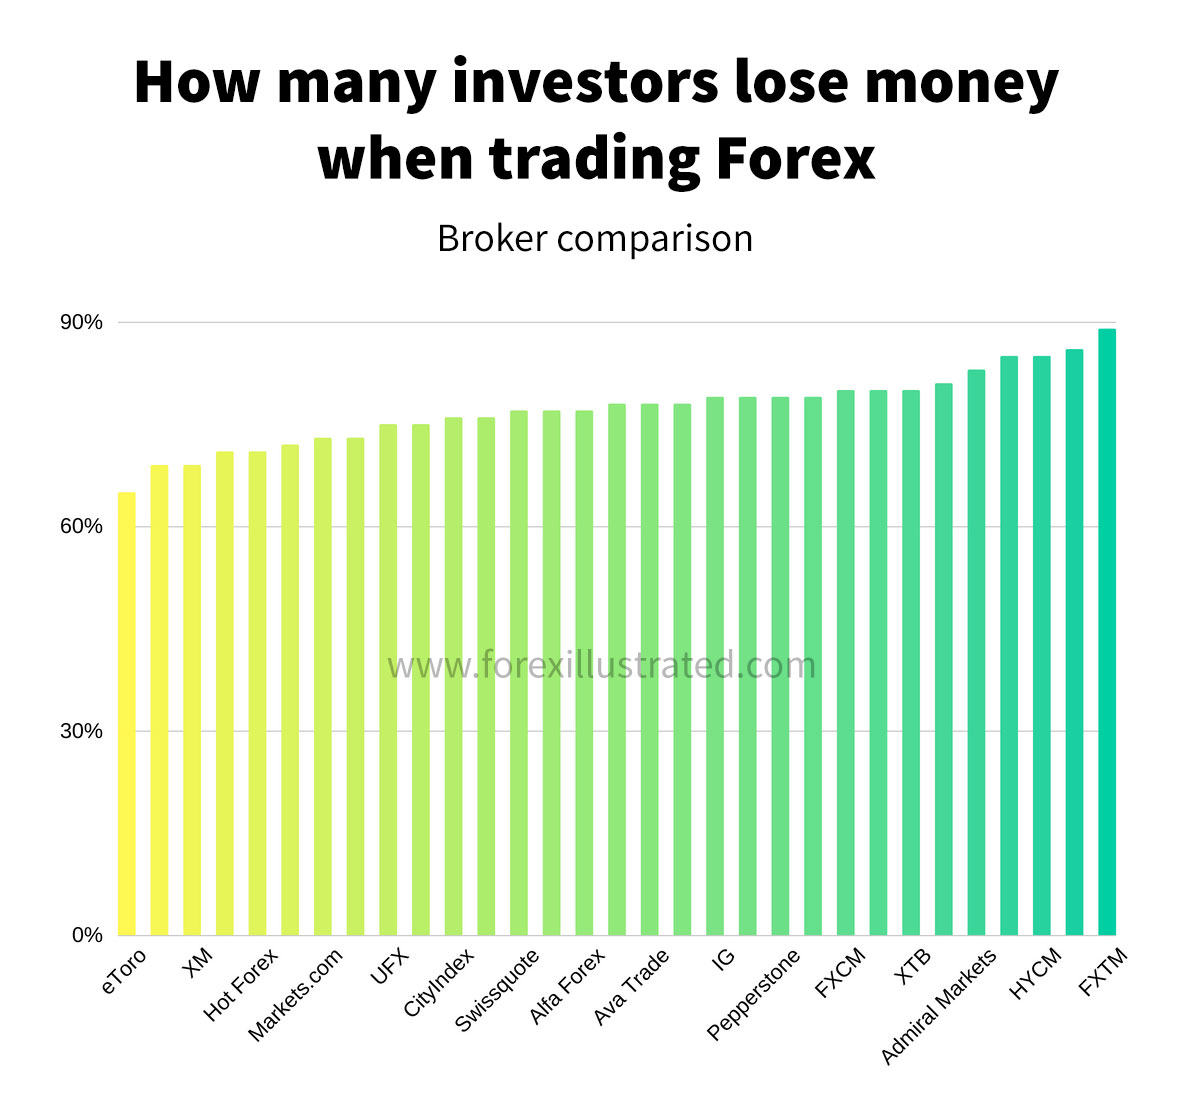 how many forex and stock traders lose money when trading - different broker comparison